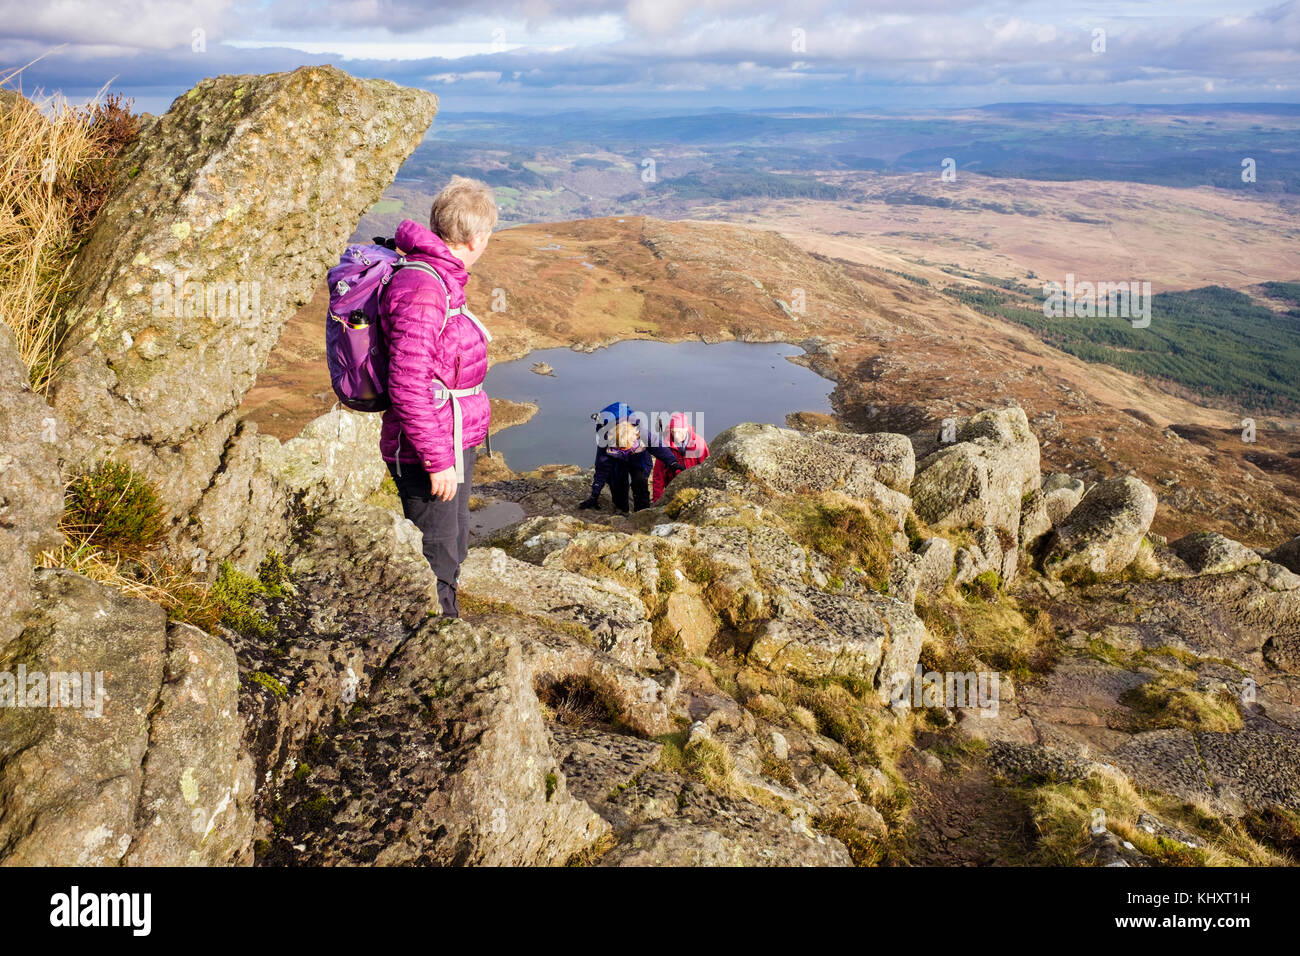 Climbing Hills Stock Photos & Climbing Hills Stock Images - Alamy